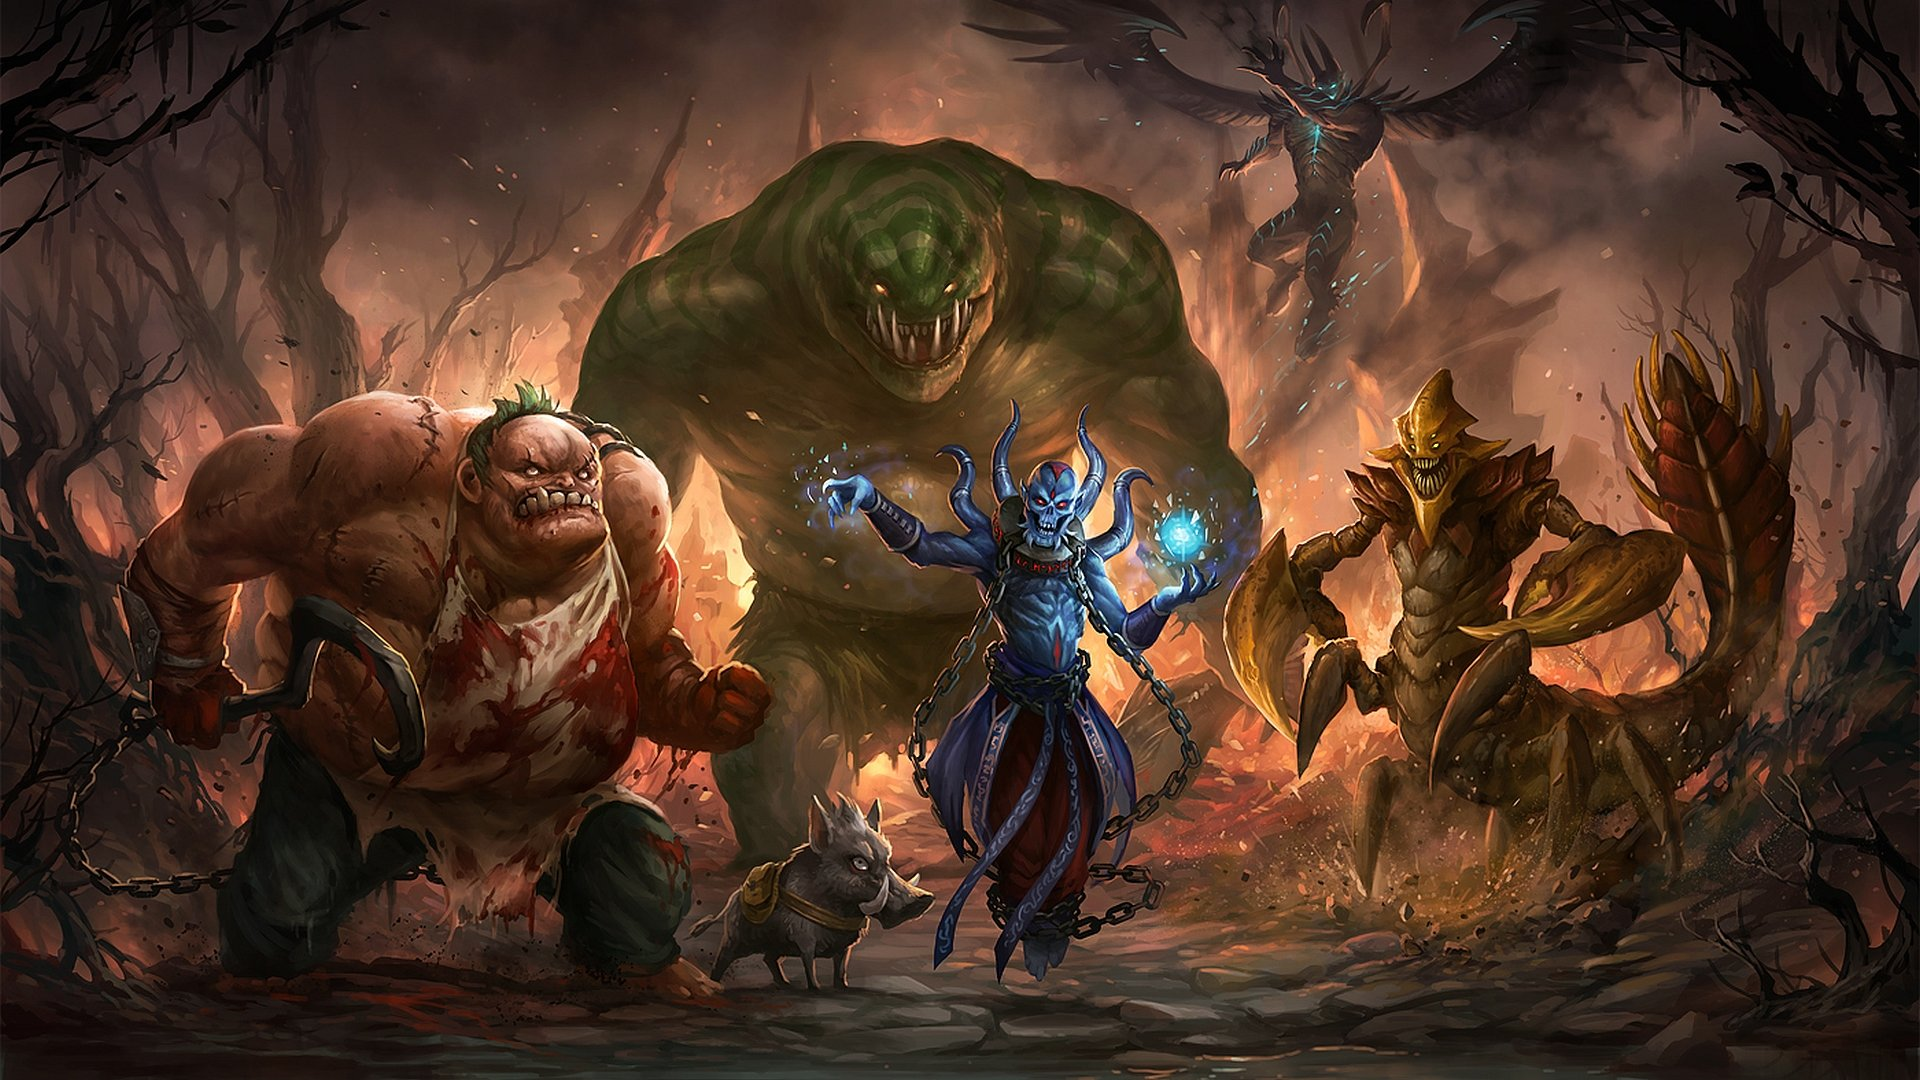 Free Download Dota 2 Wallpaper Id 302358 Full Hd 1080p For Pc